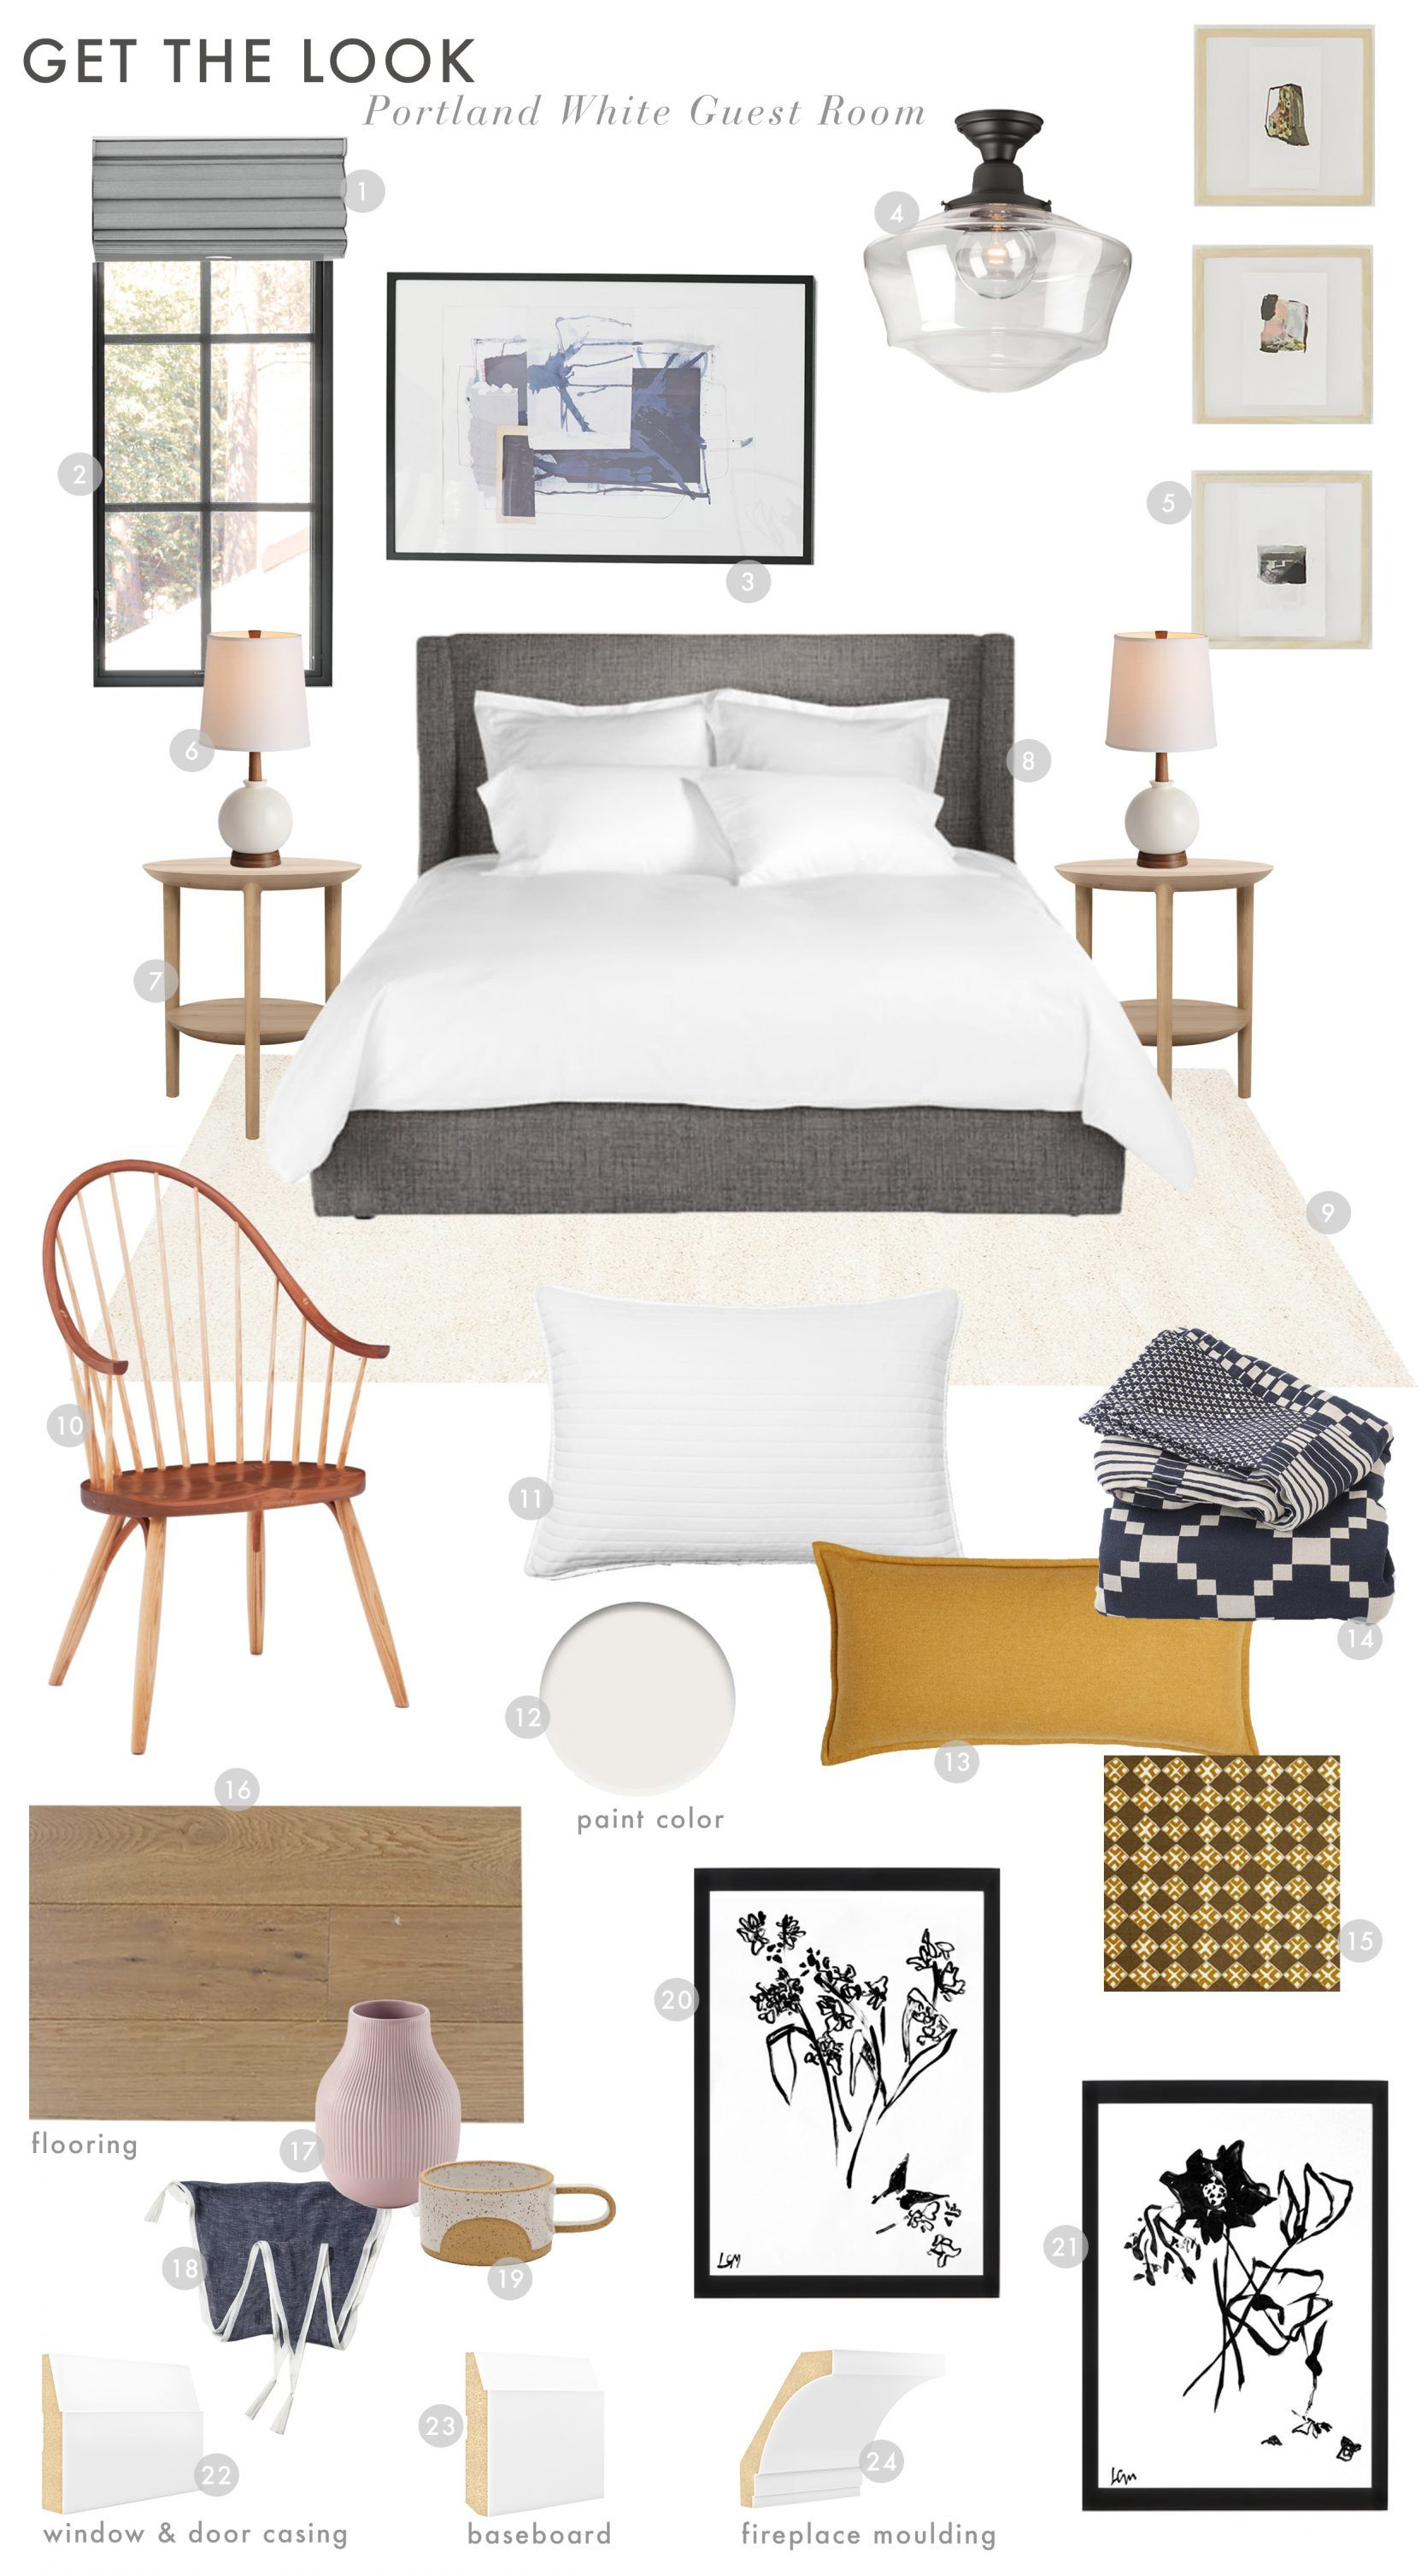 14 Rules To Follow To Design Style The Perfect Bedroom Bedroom Furniture Layout Bedroom Decor Guest Bedroom Decor